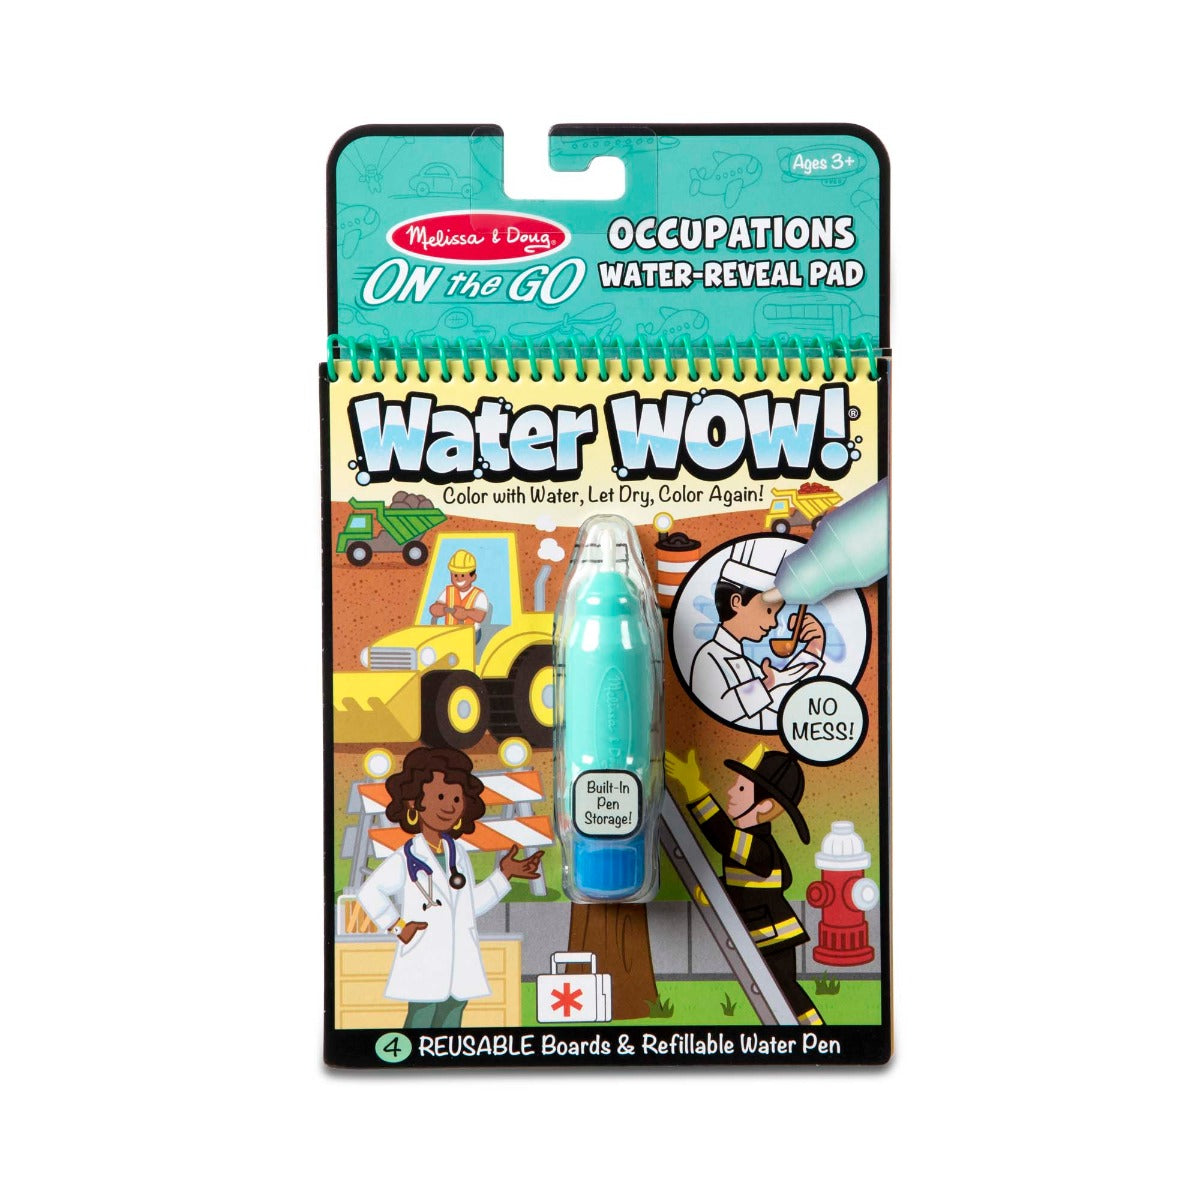 Melissa and Doug On the Go Water Wow Occupations Activity Pad